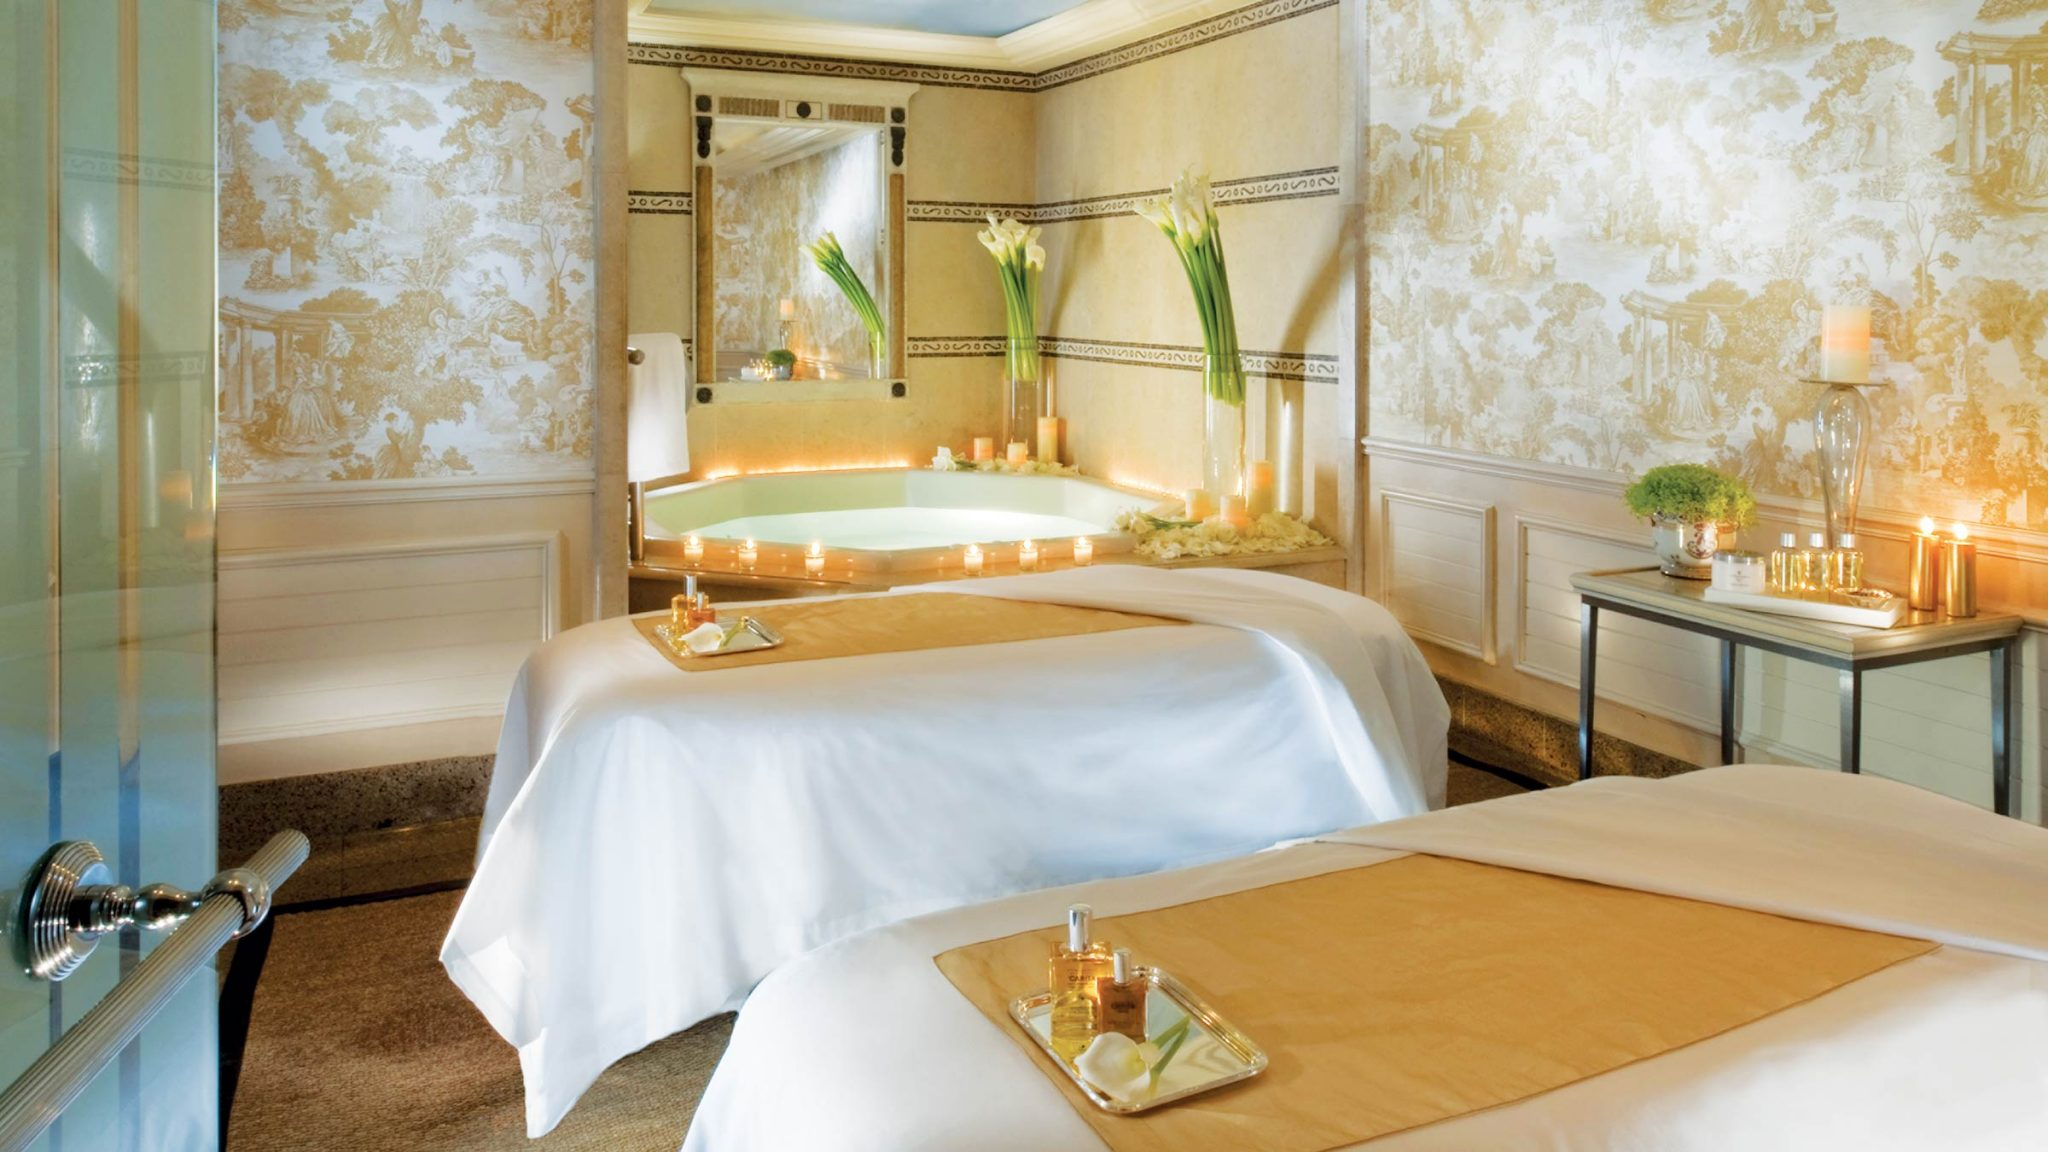 An unforgettable vacation by four seasons paris for Hotel design paris spa